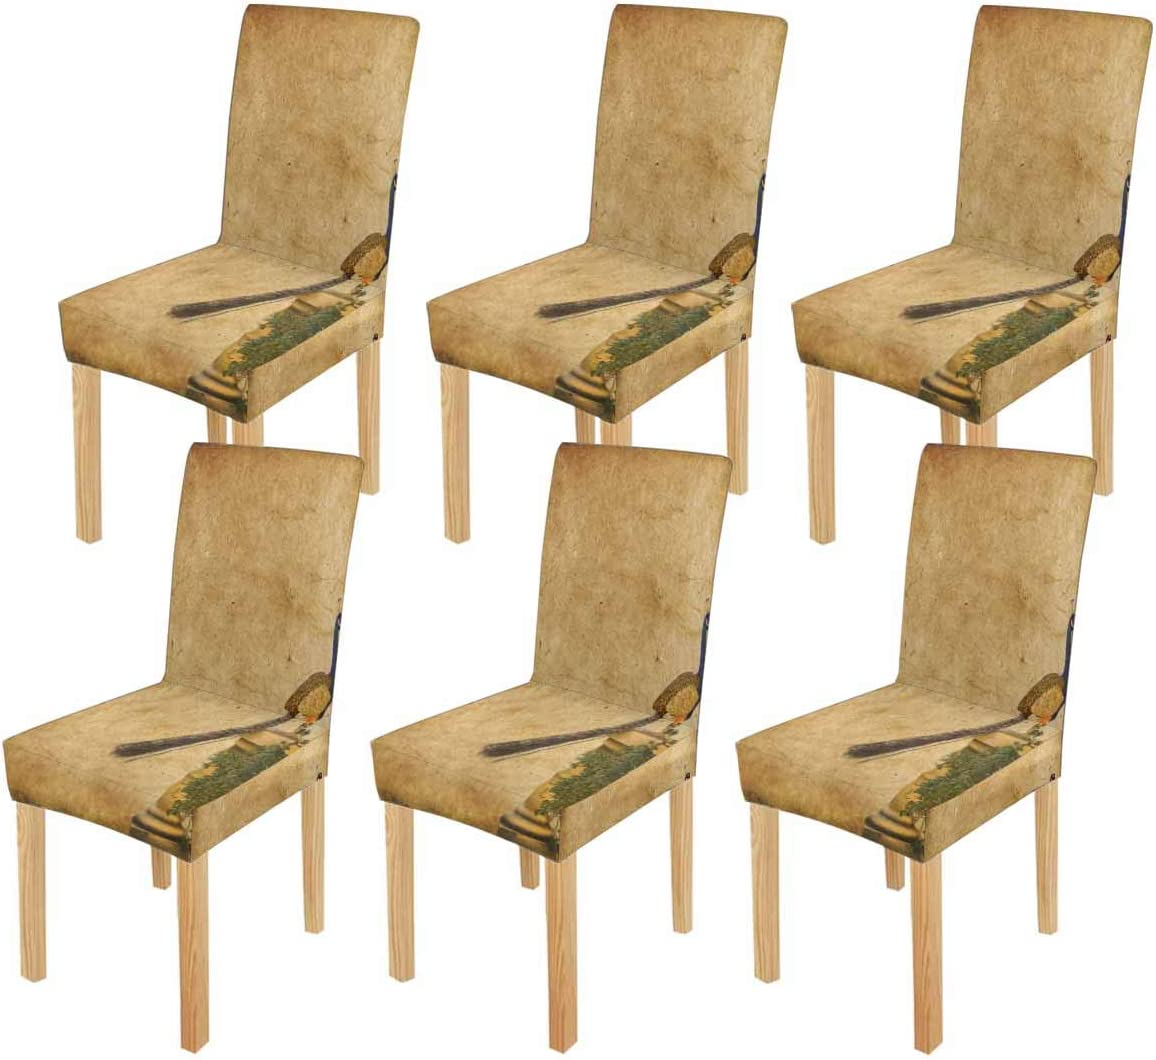 InterestPrint Peacock Grunge Background Chair Max High quality 72% OFF Dining Cover Seat